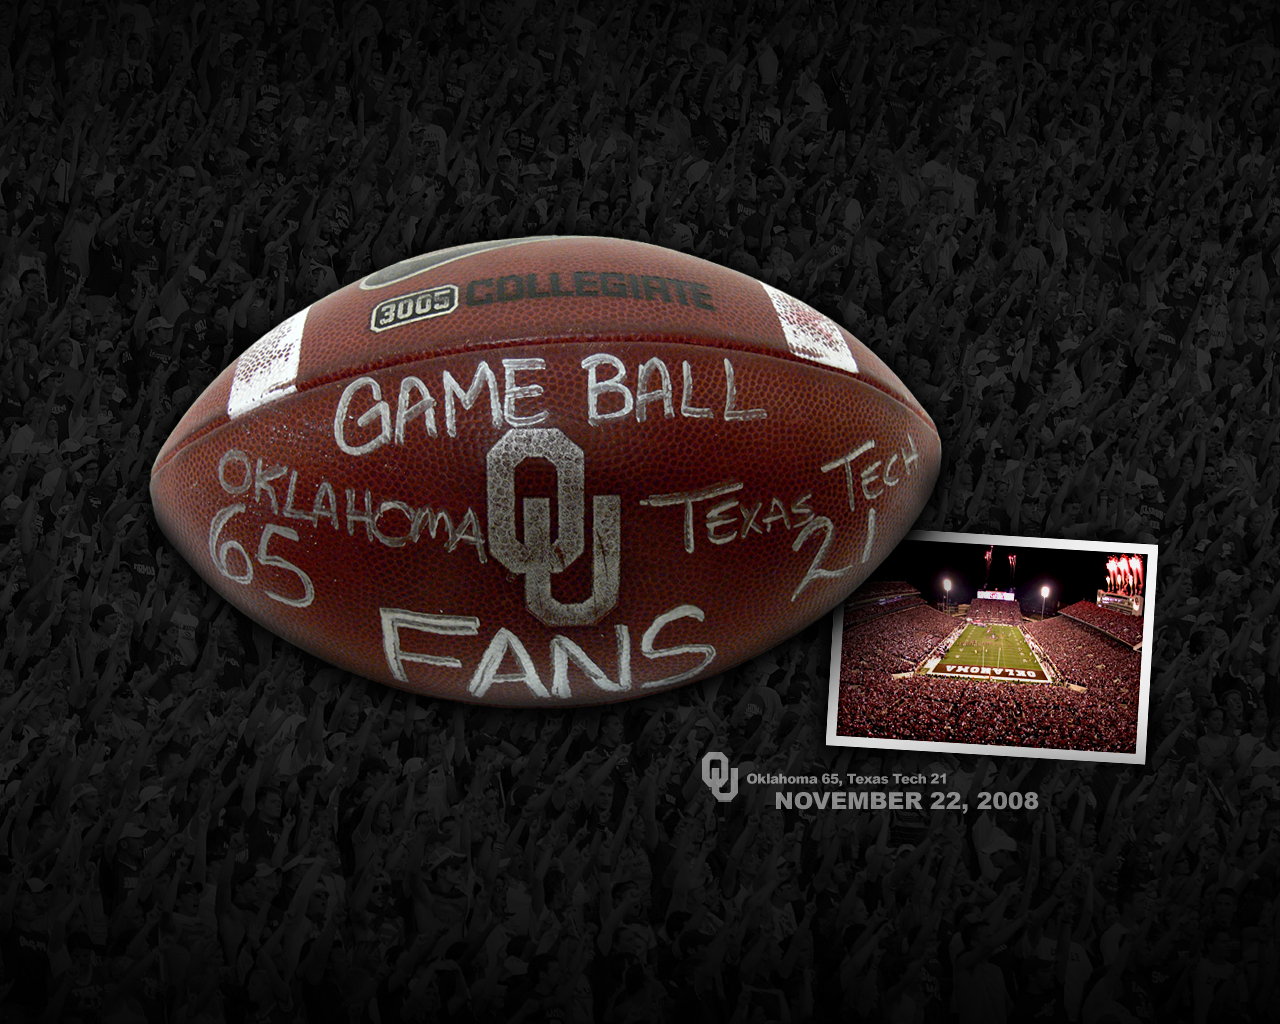 Oklahoma Sooners Wallpaper for Pinterest 1280x1024